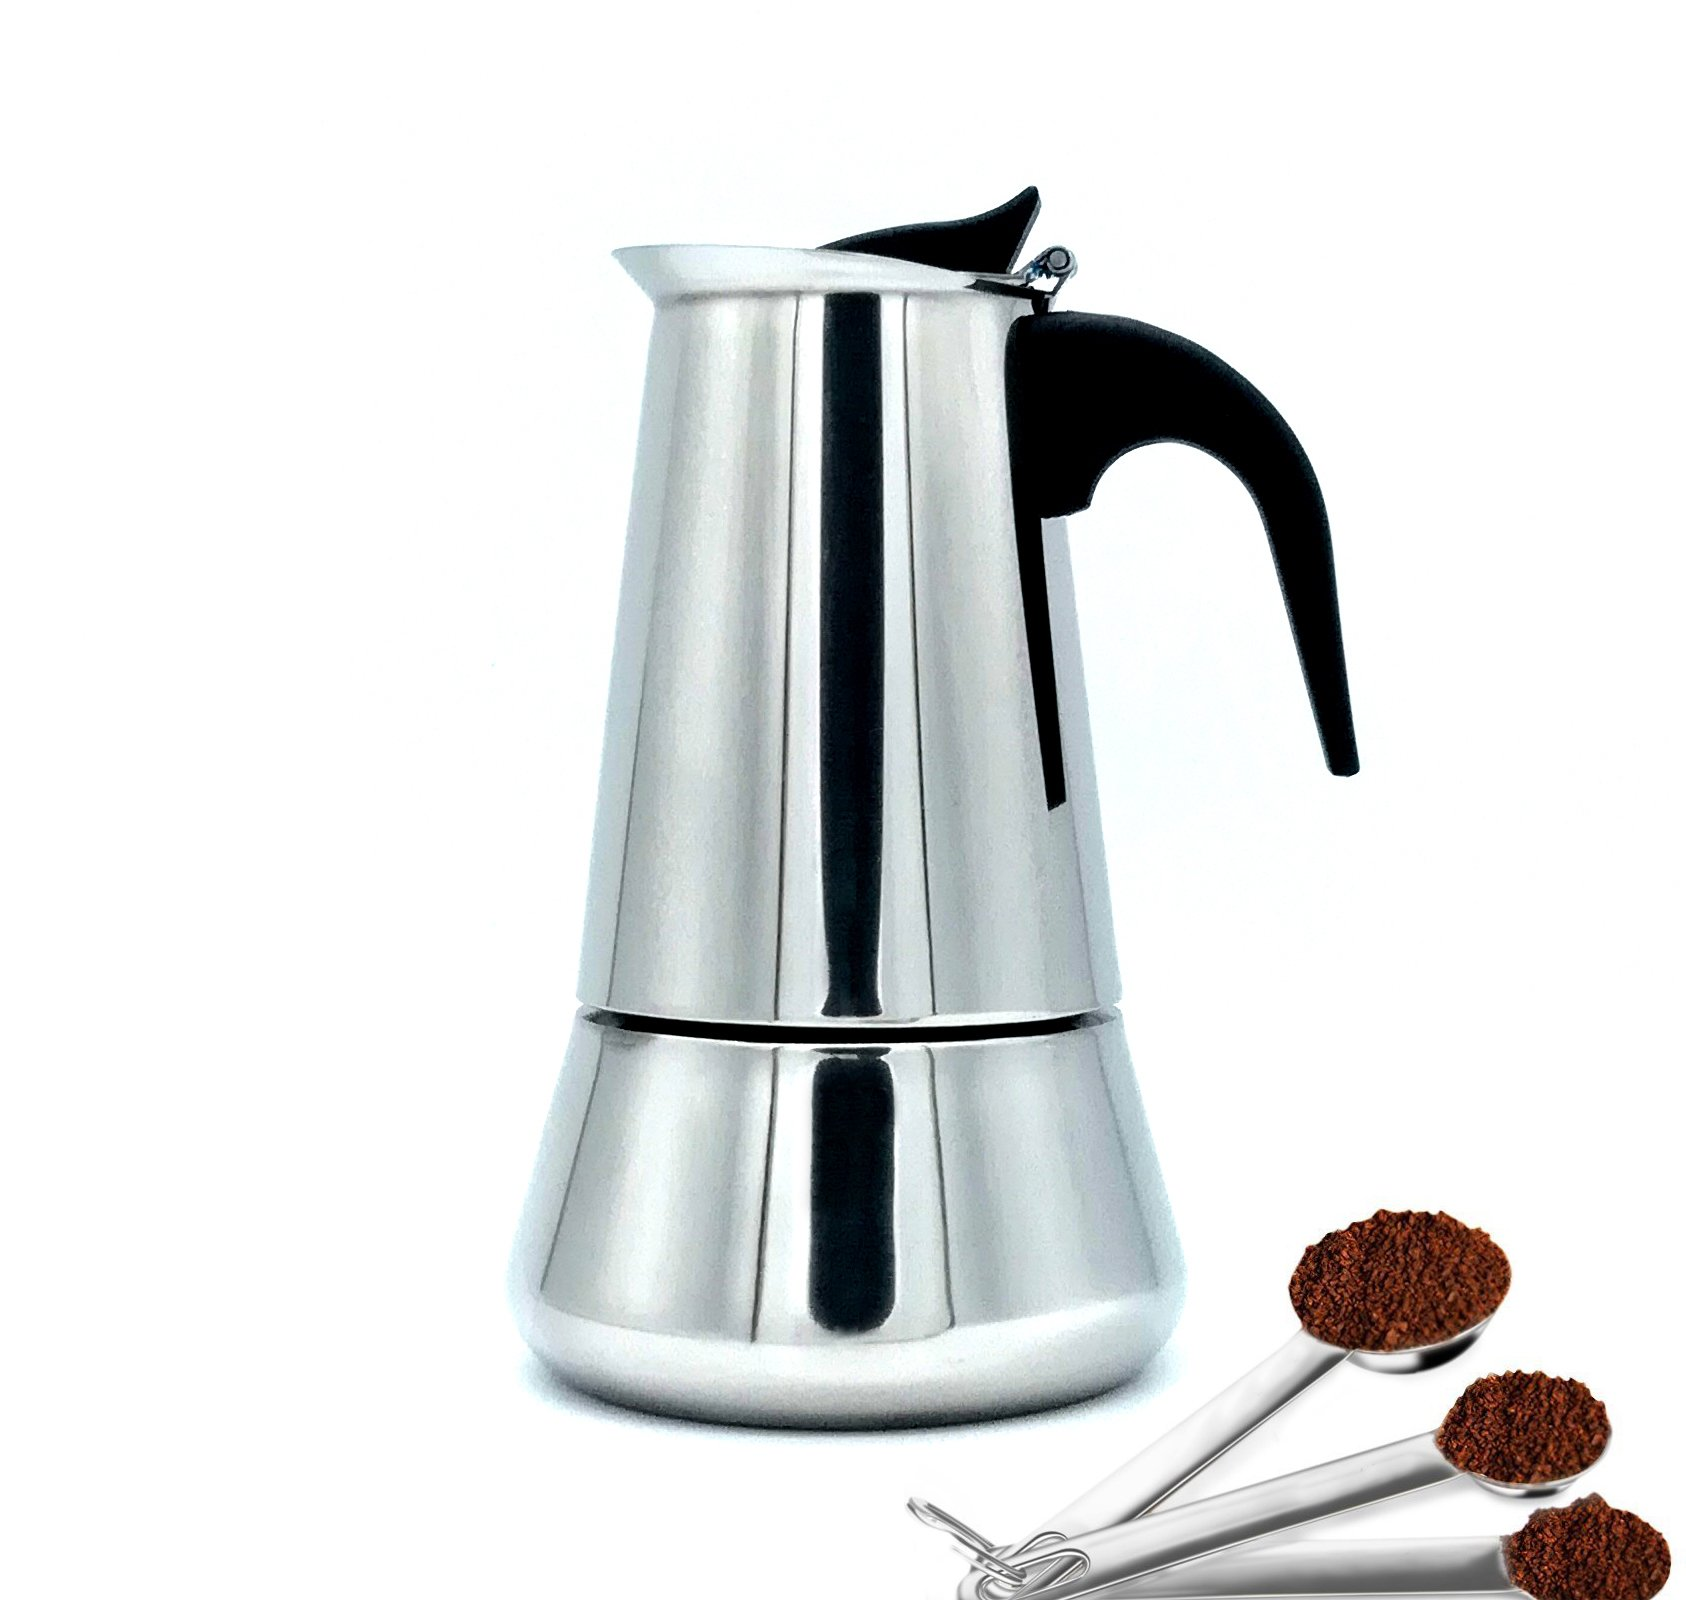 Sprise Stainless Steel Coffee Percolator 6-Cup Stovetop Moka Maker, Stainless Steel Moka Pot Coffee Maker Latte Percolator,10 oz